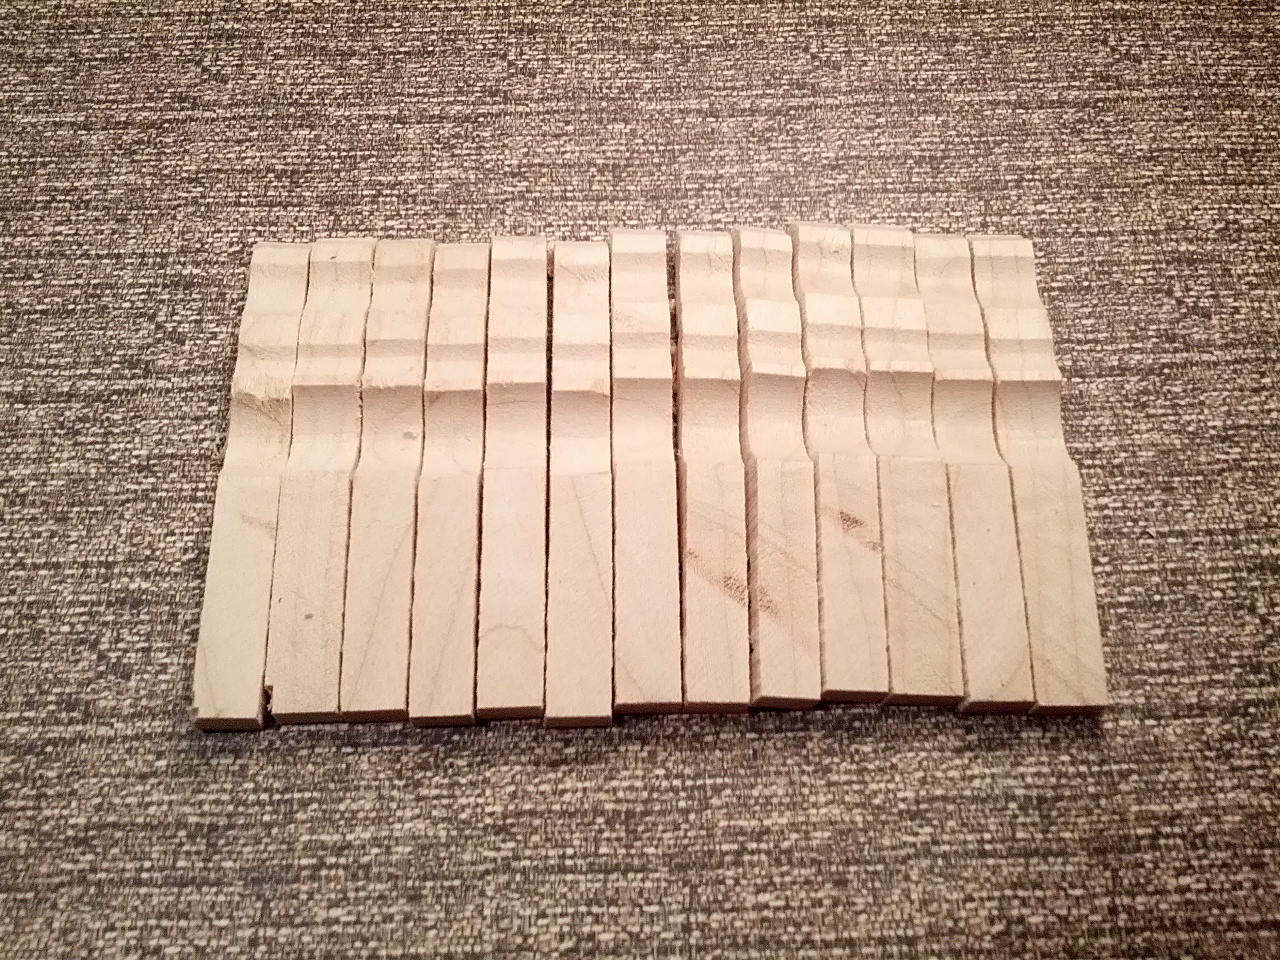 clothespin halves cut from blank